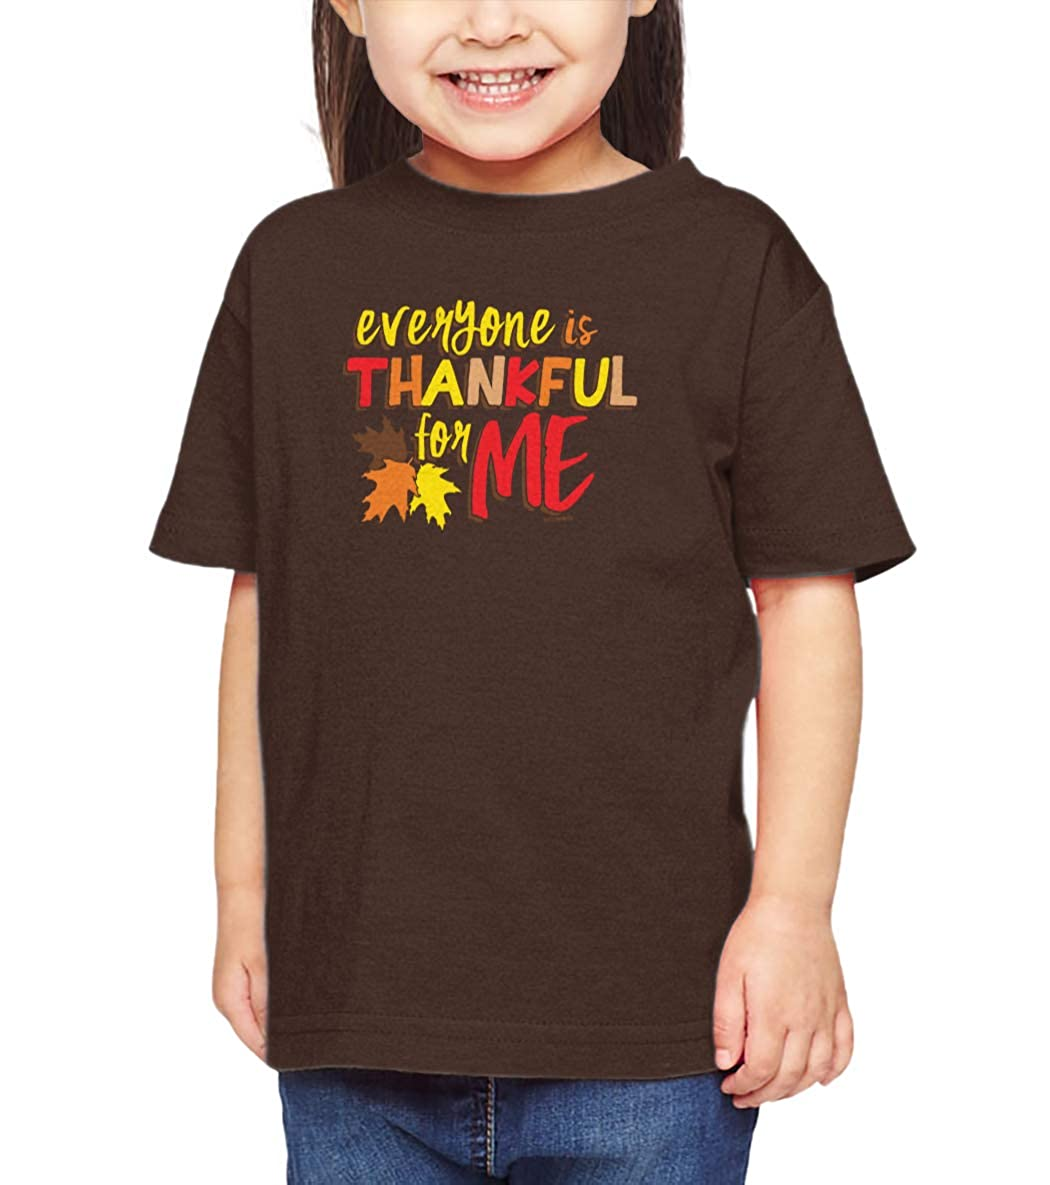 Funny Cute Infant//Toddler Cotton Jersey T-Shirt Haase Unlimited Everyone is Thankful for Me